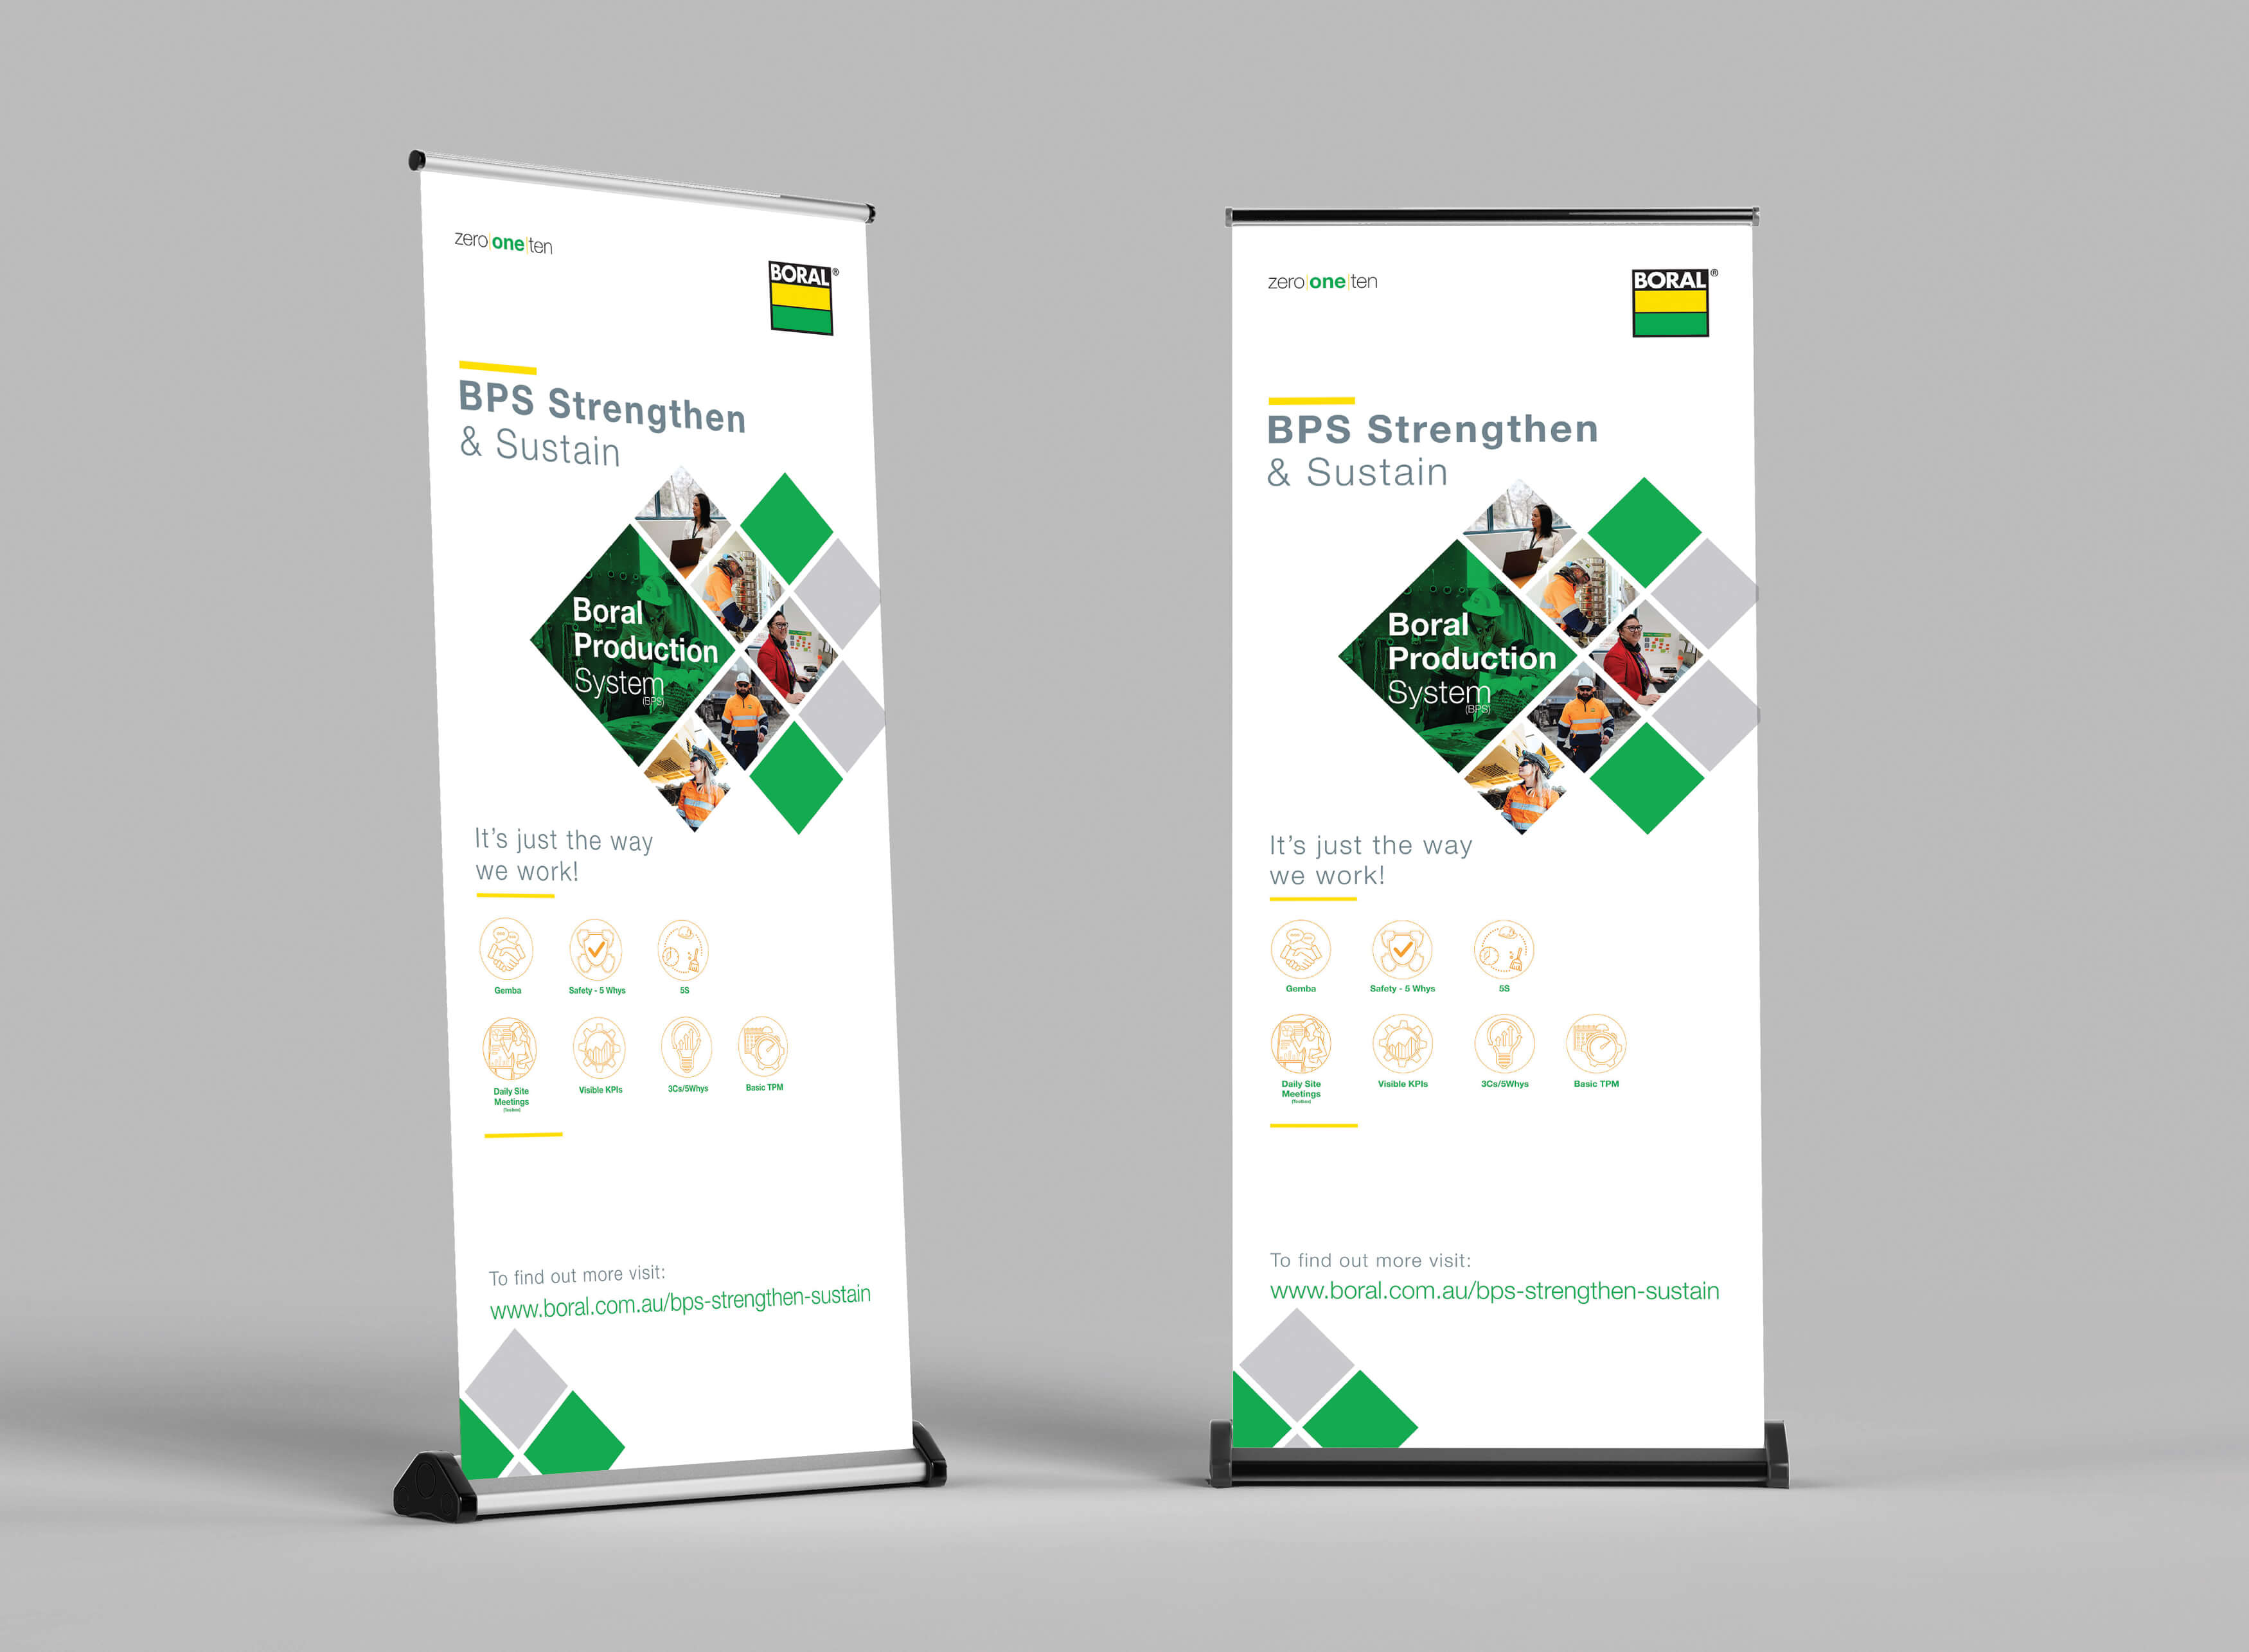 Boral BPS Strengthen & Sustain Campaign